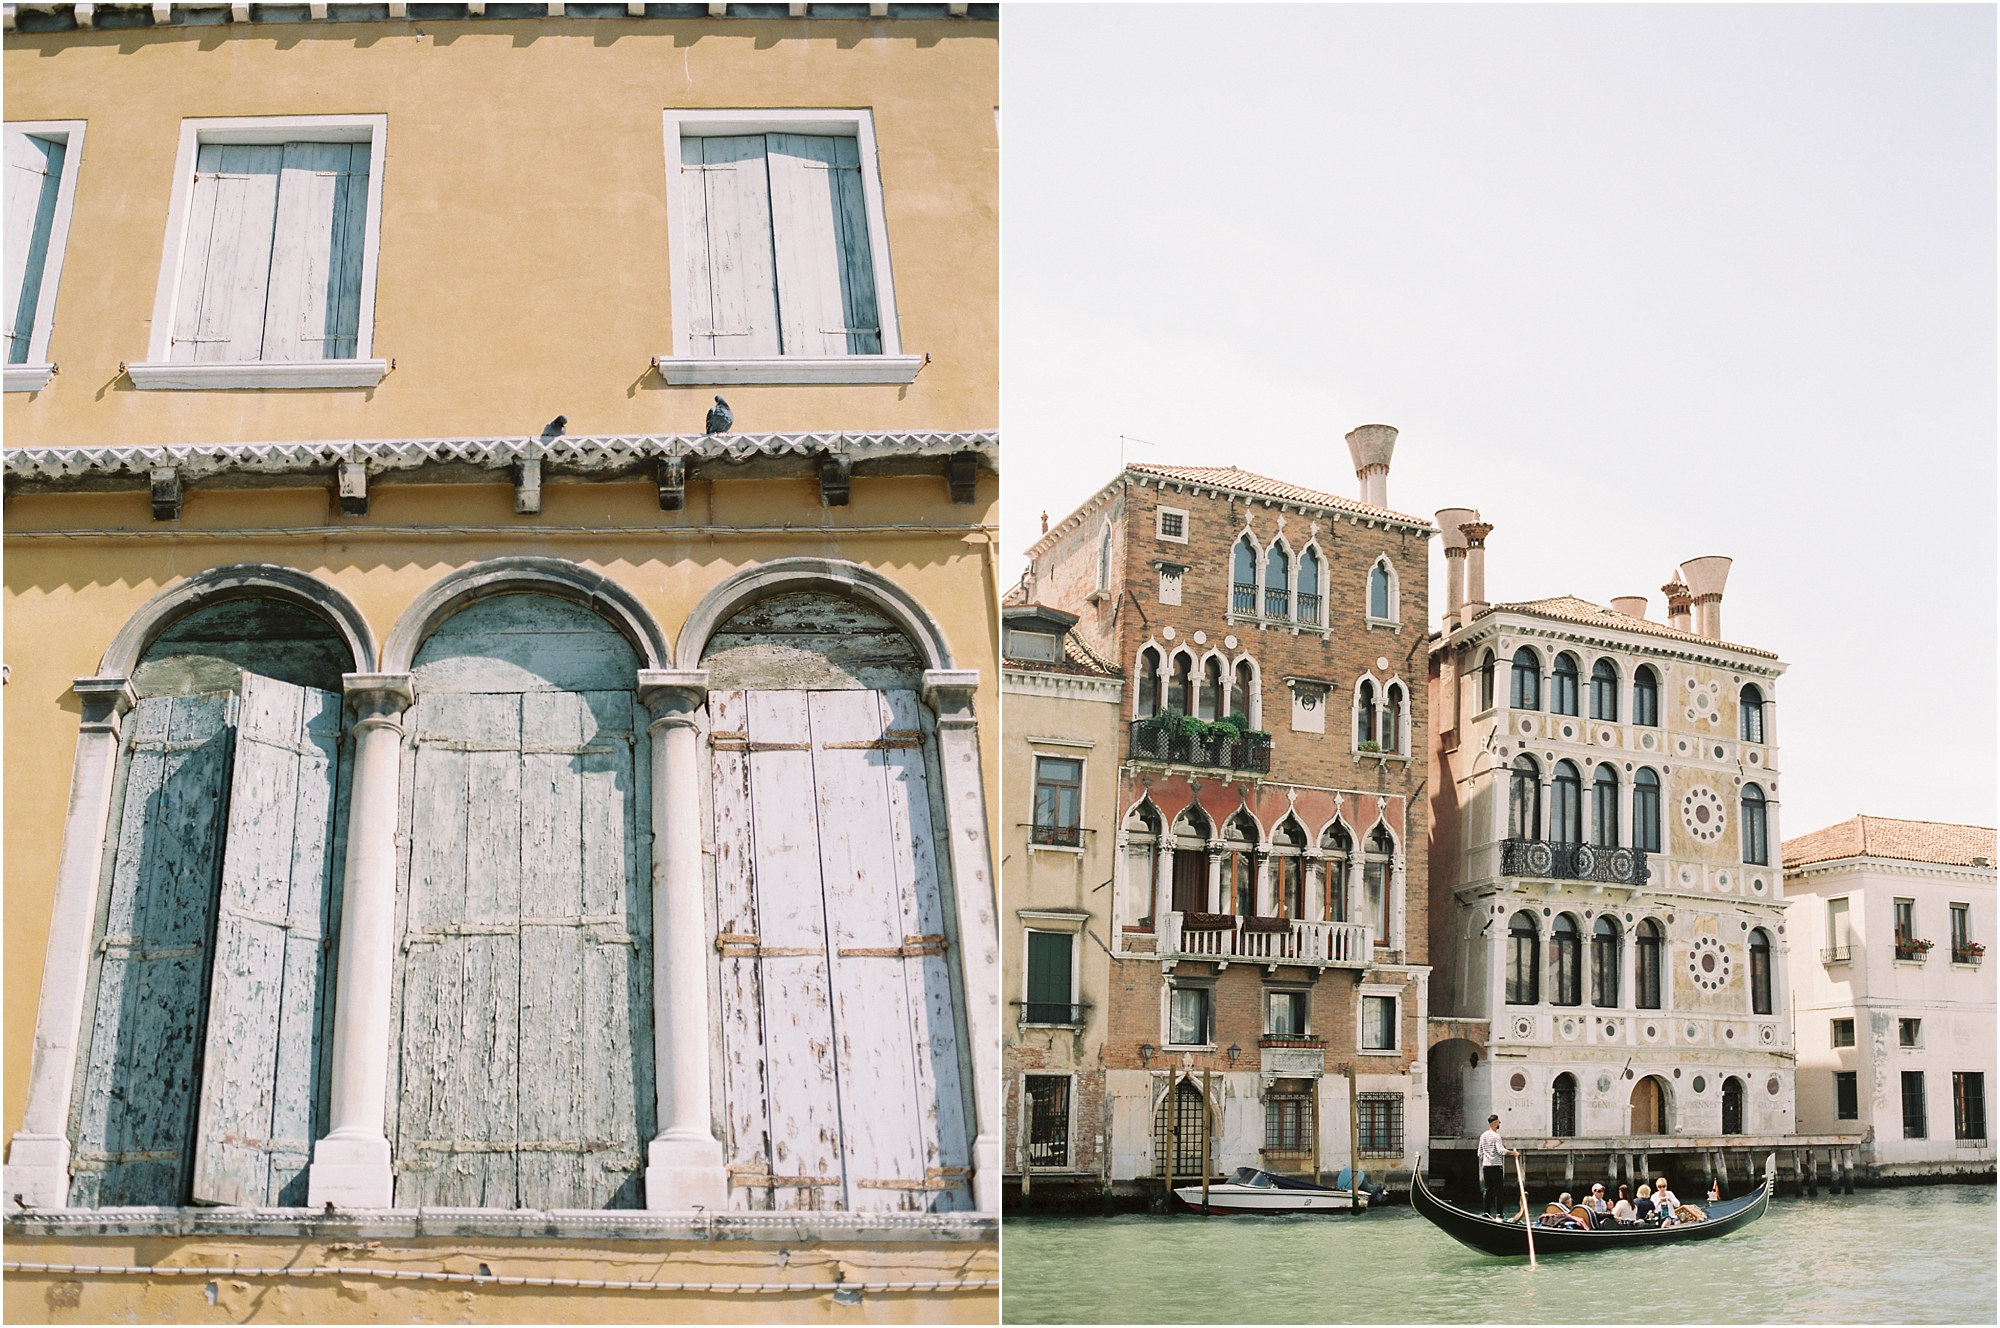 Buildings along canal in Venice Italy